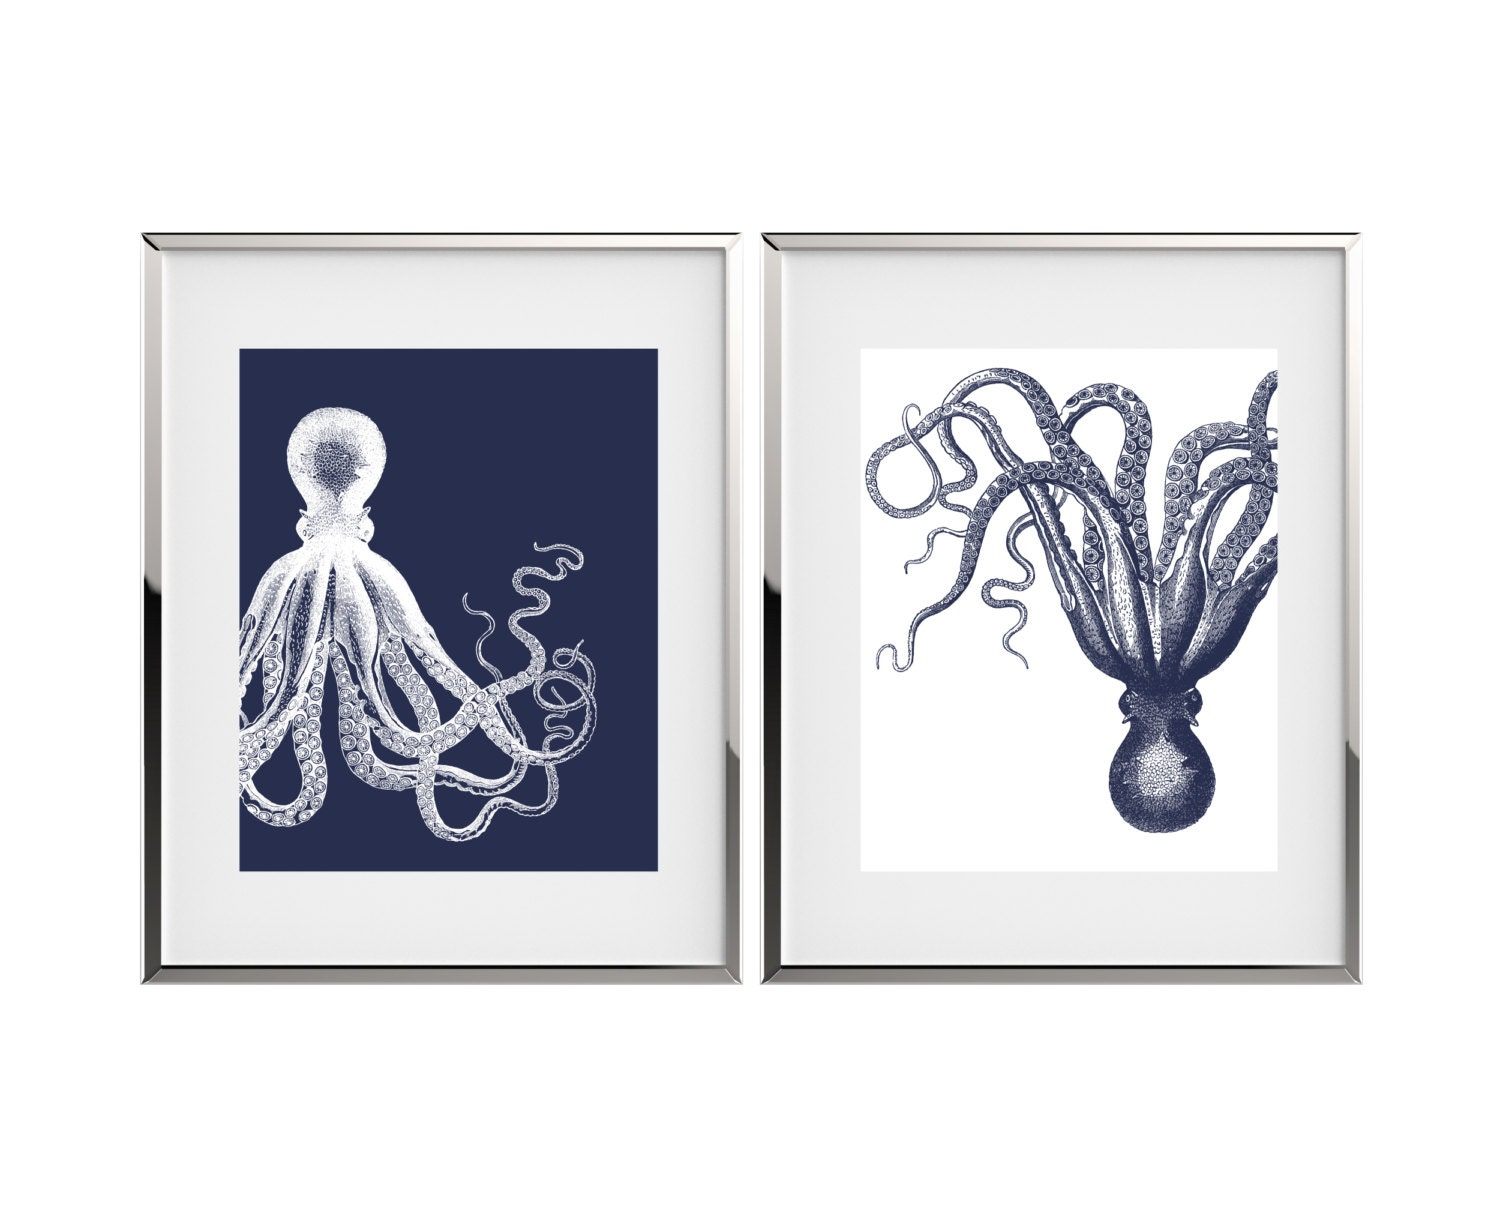 Octopus Art Nautical Decor Kraken Art Print Set Bathroom Decor